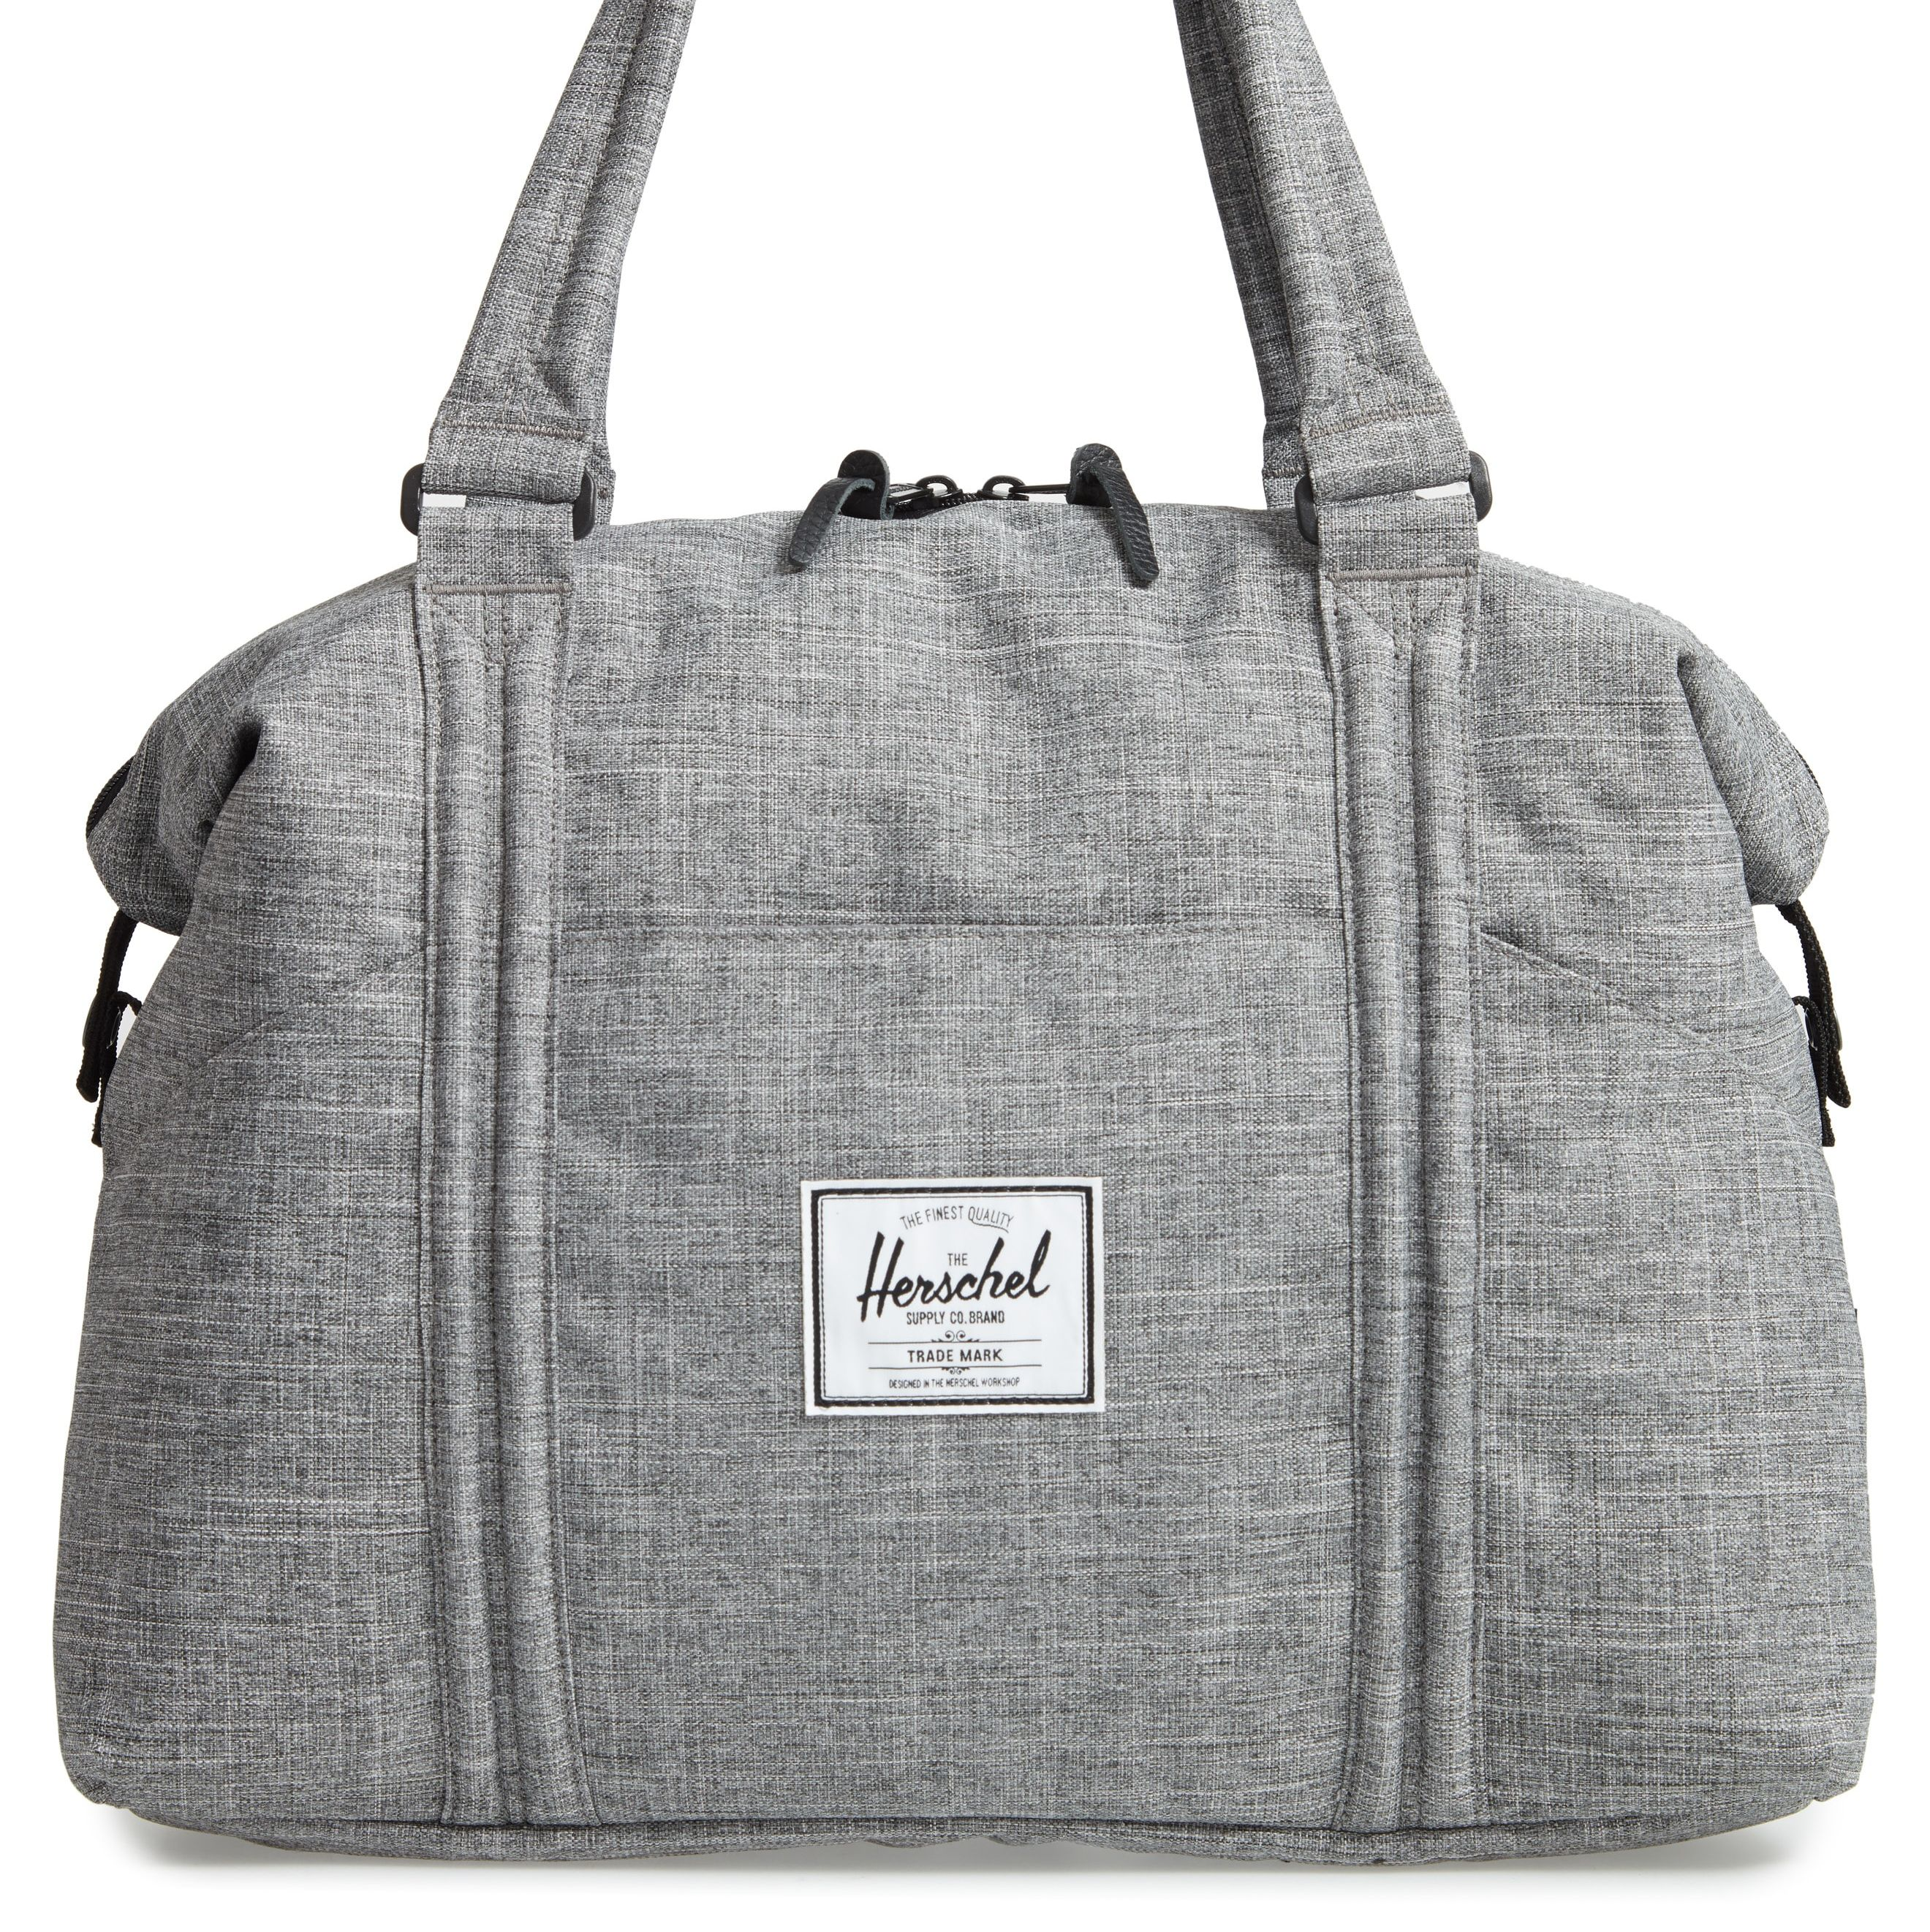 10 Best Gym Bags for Women in 2018 - Cute Gym Bags 5142f5be34547